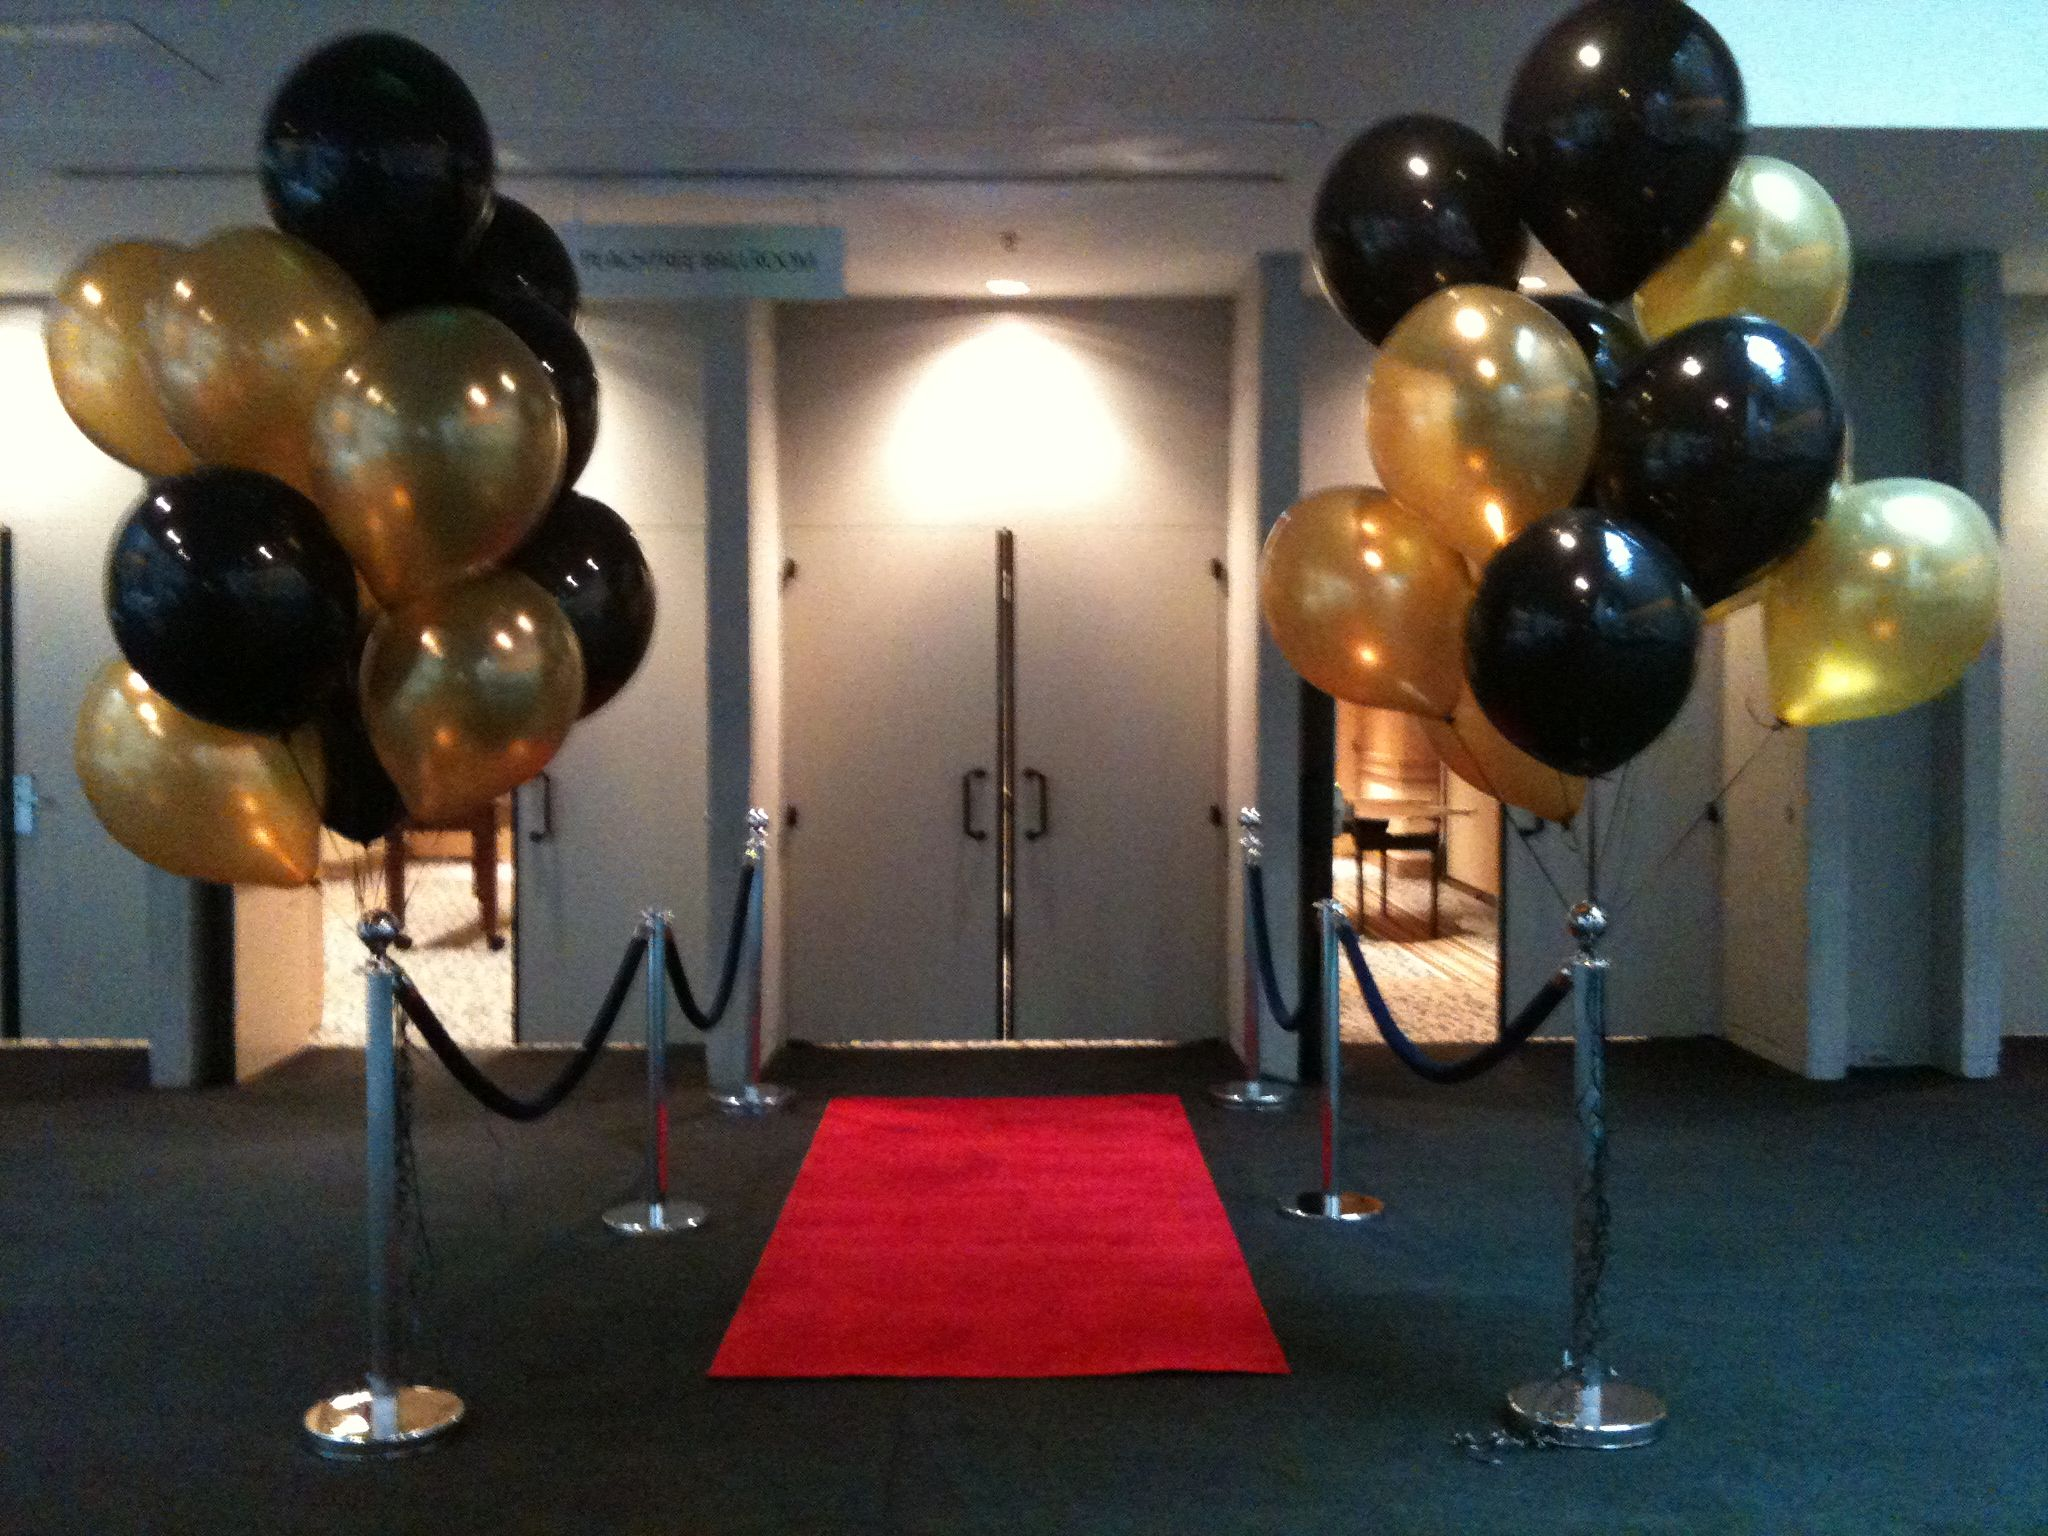 For This Event We Set Up Our Red Carpet With Ropes And